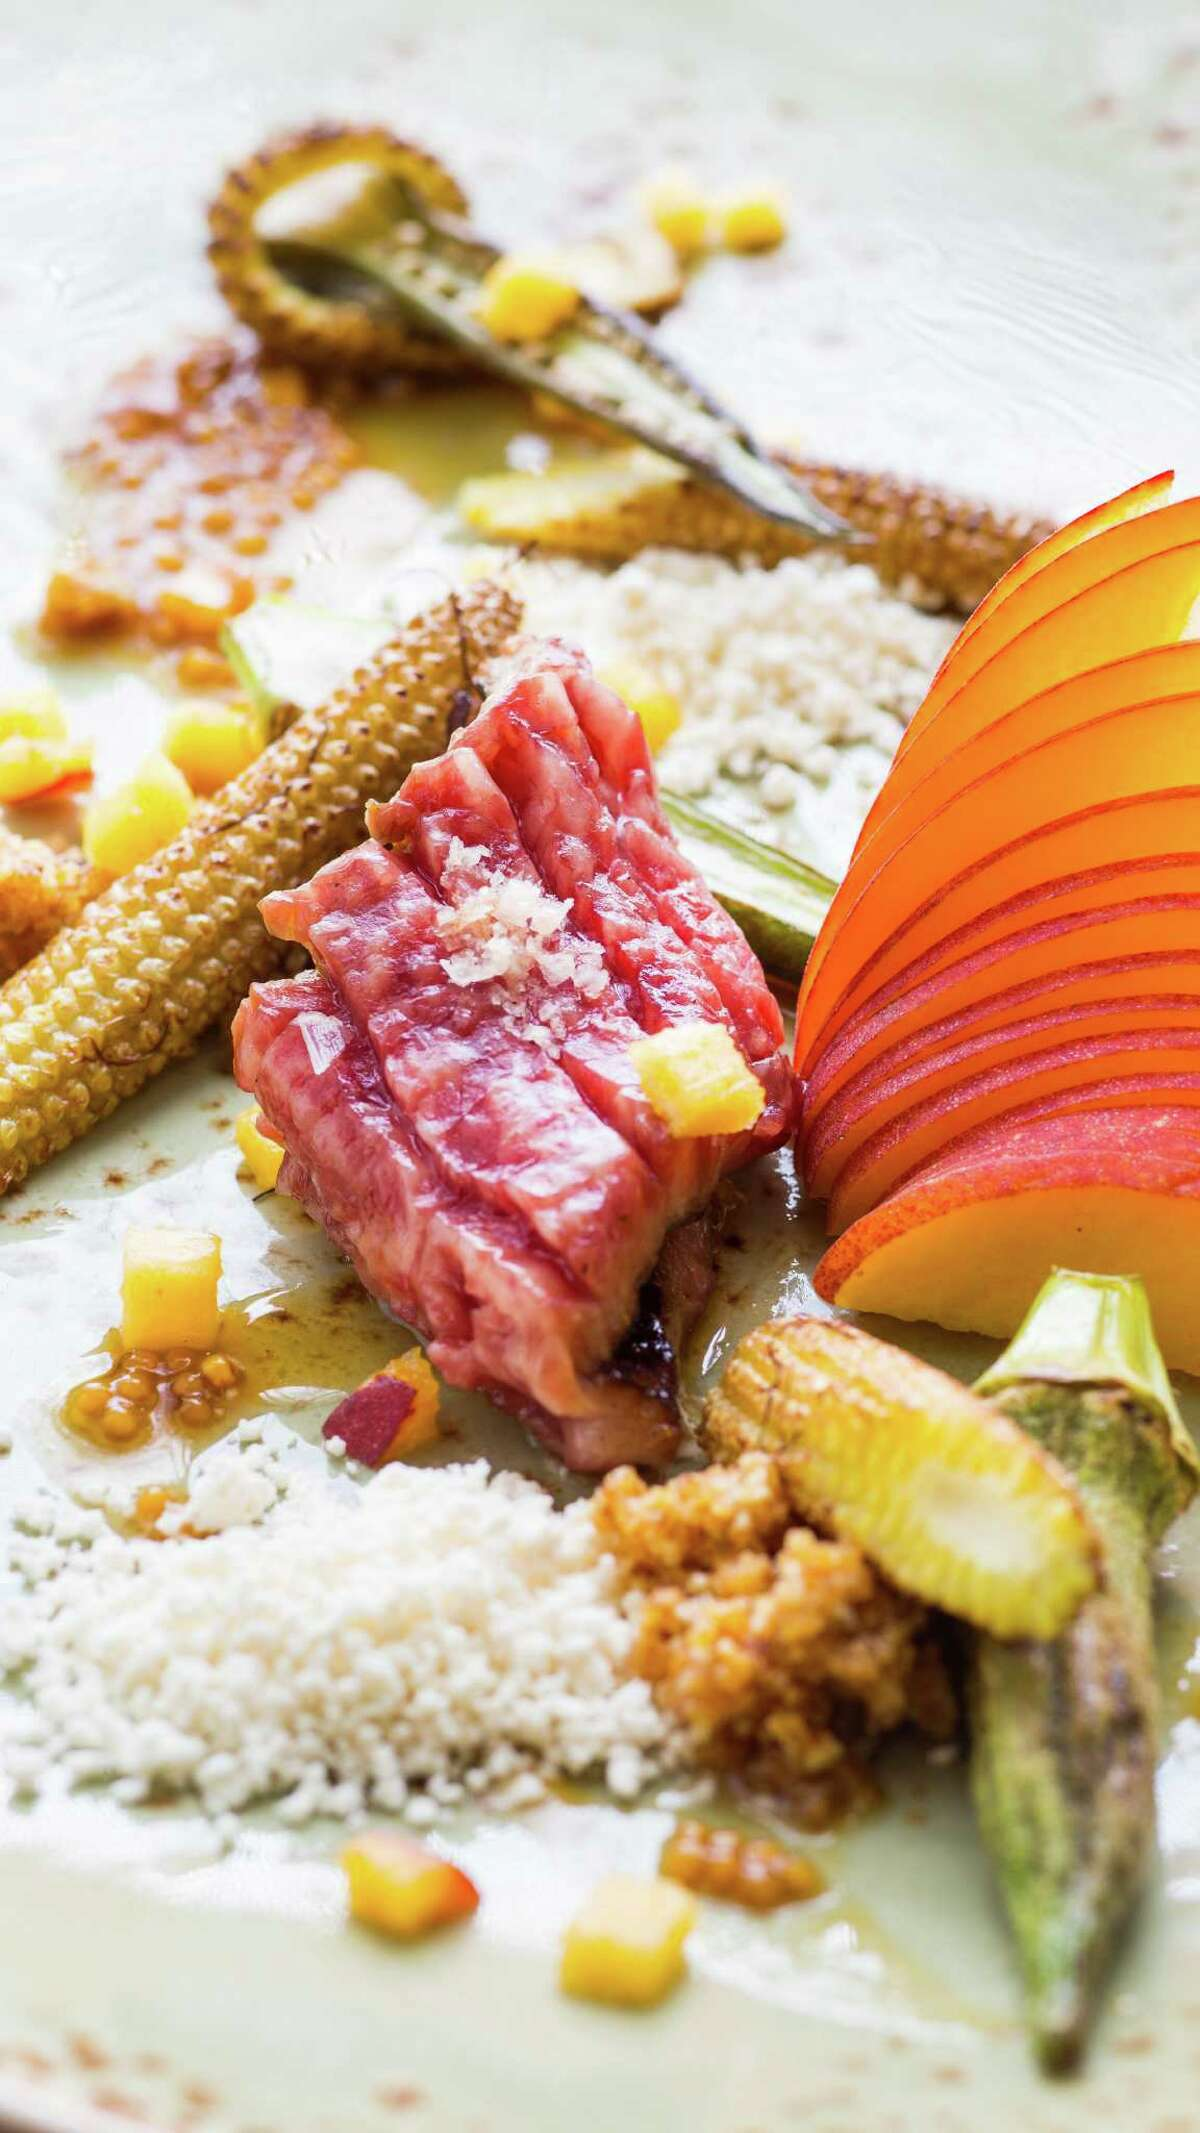 Kogashima A5 Kobe Beef, Texas Peaches, okra, corn, smoked peach and mostarda at Triniti.